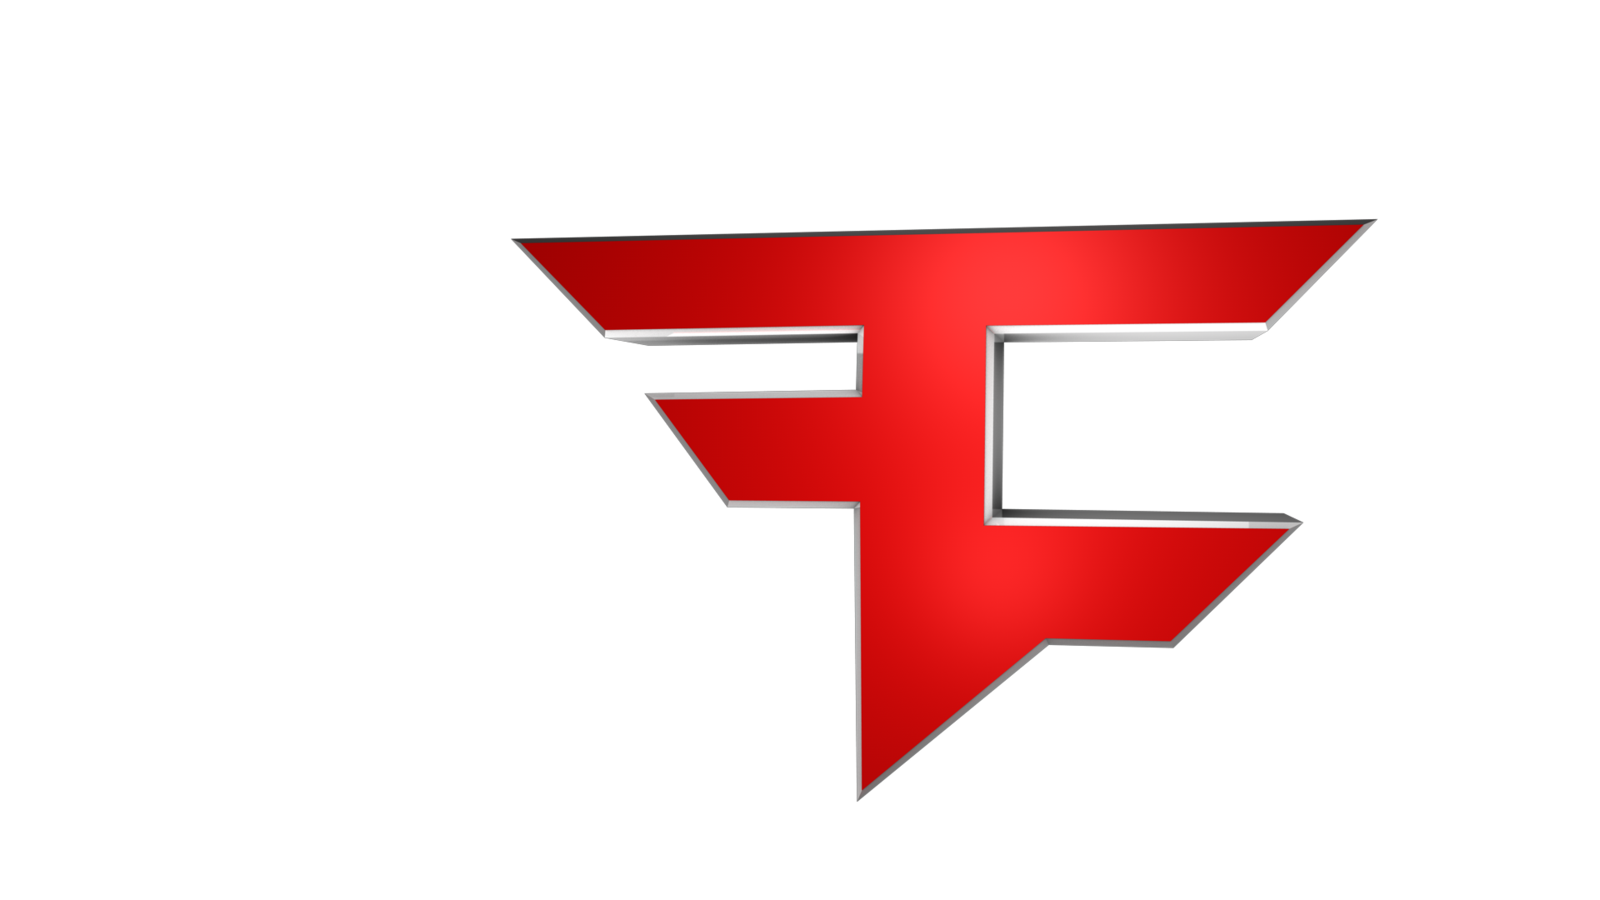 csgo team logo template downfall of cs go team faze clan the gosu